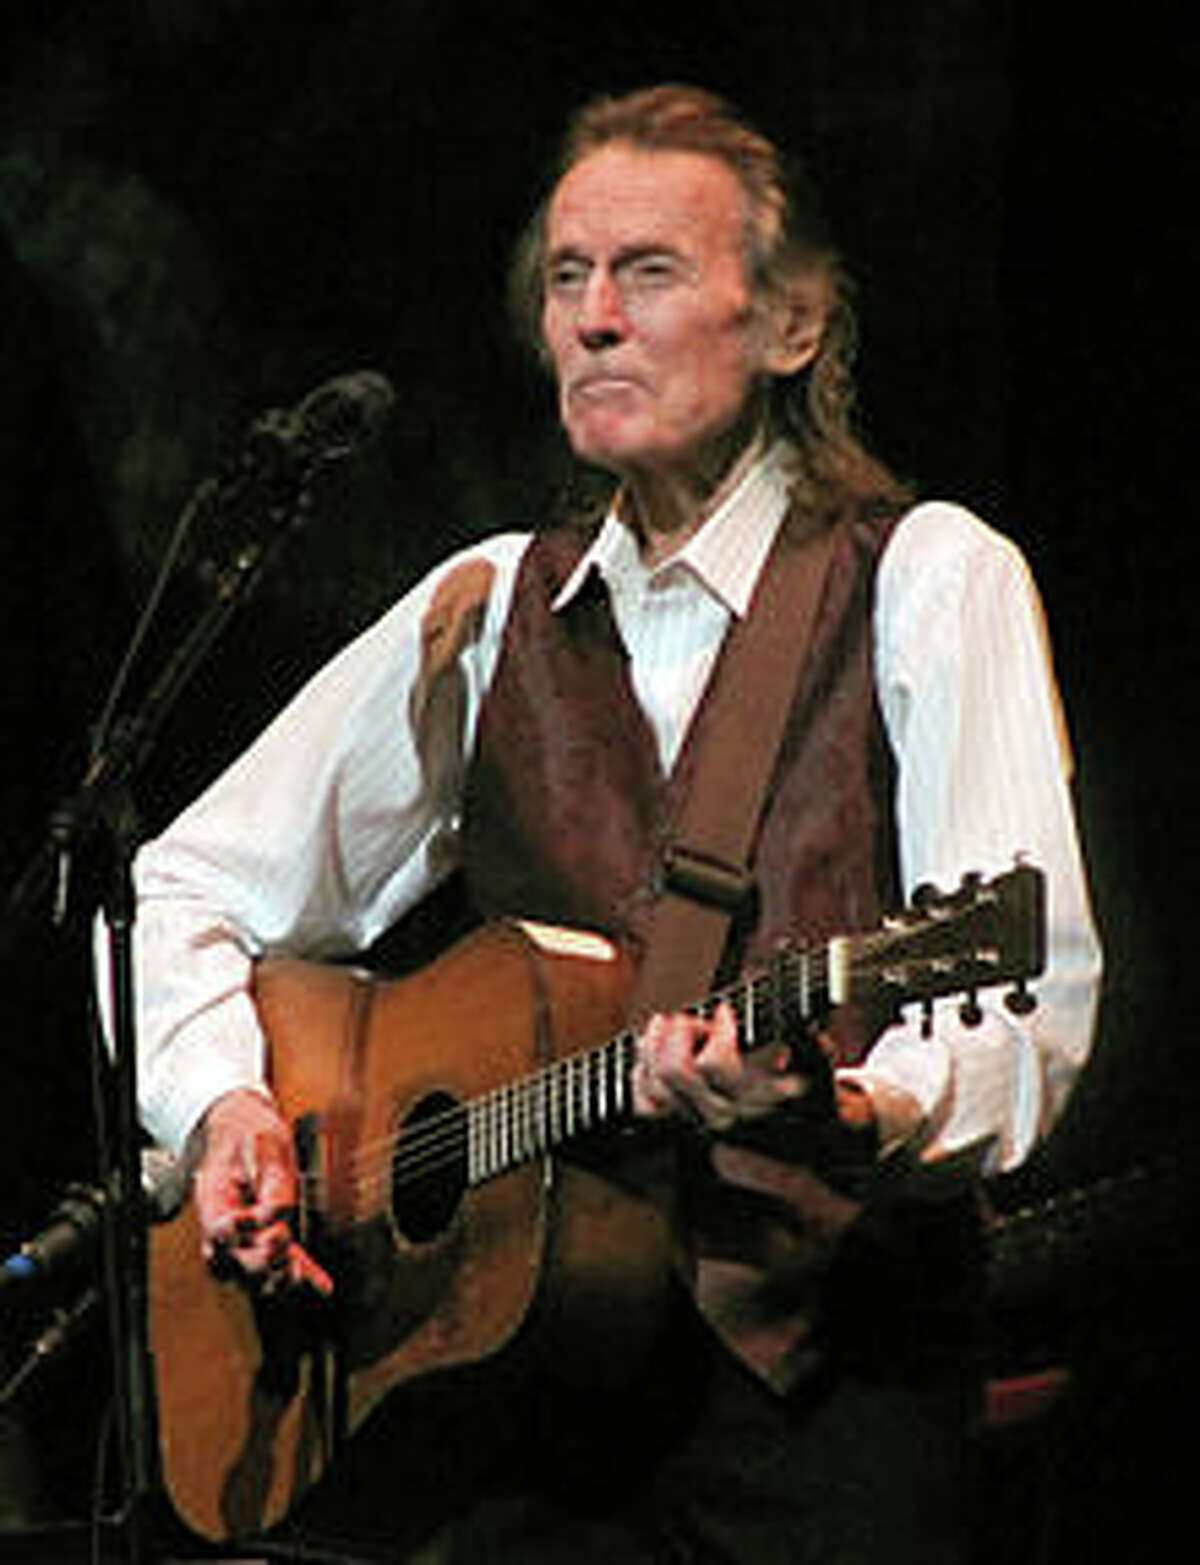 Singer Gordon Lightfoot will be in concert at 8 p.m. on Saturday at the Little River Casino Resort. (Courtesy Photo)